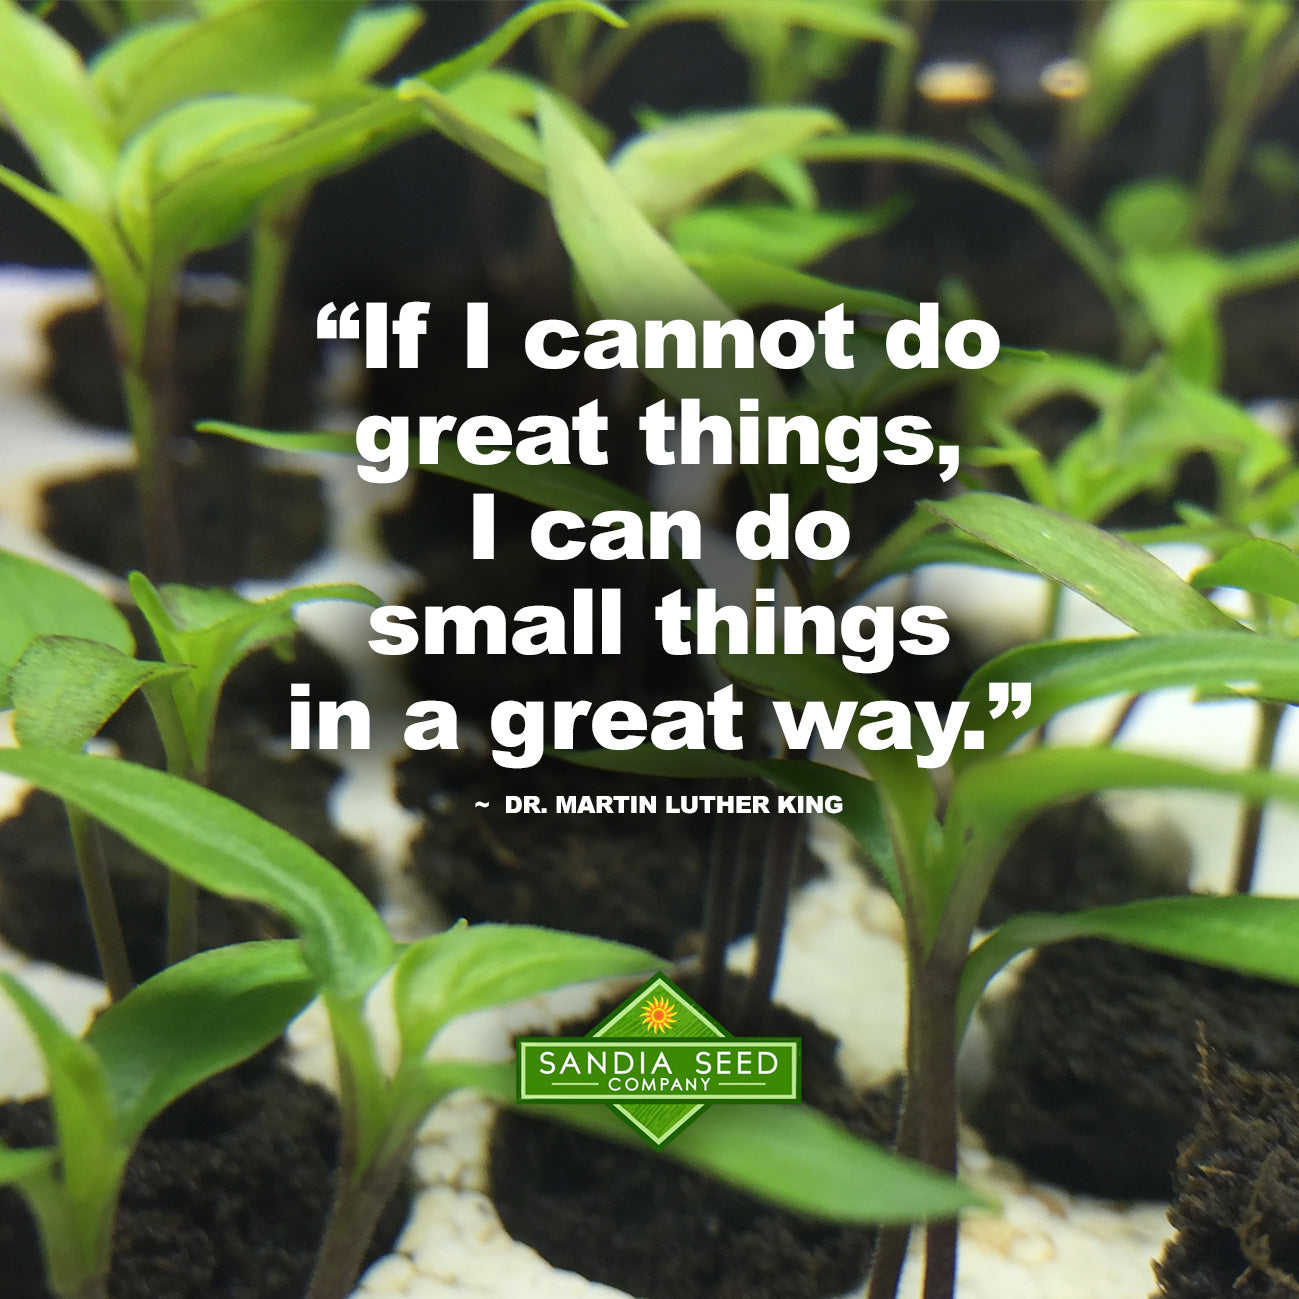 Garden Quote: If I cannot do great things, I can do small things in a great way. Mt. Luther King Jr.